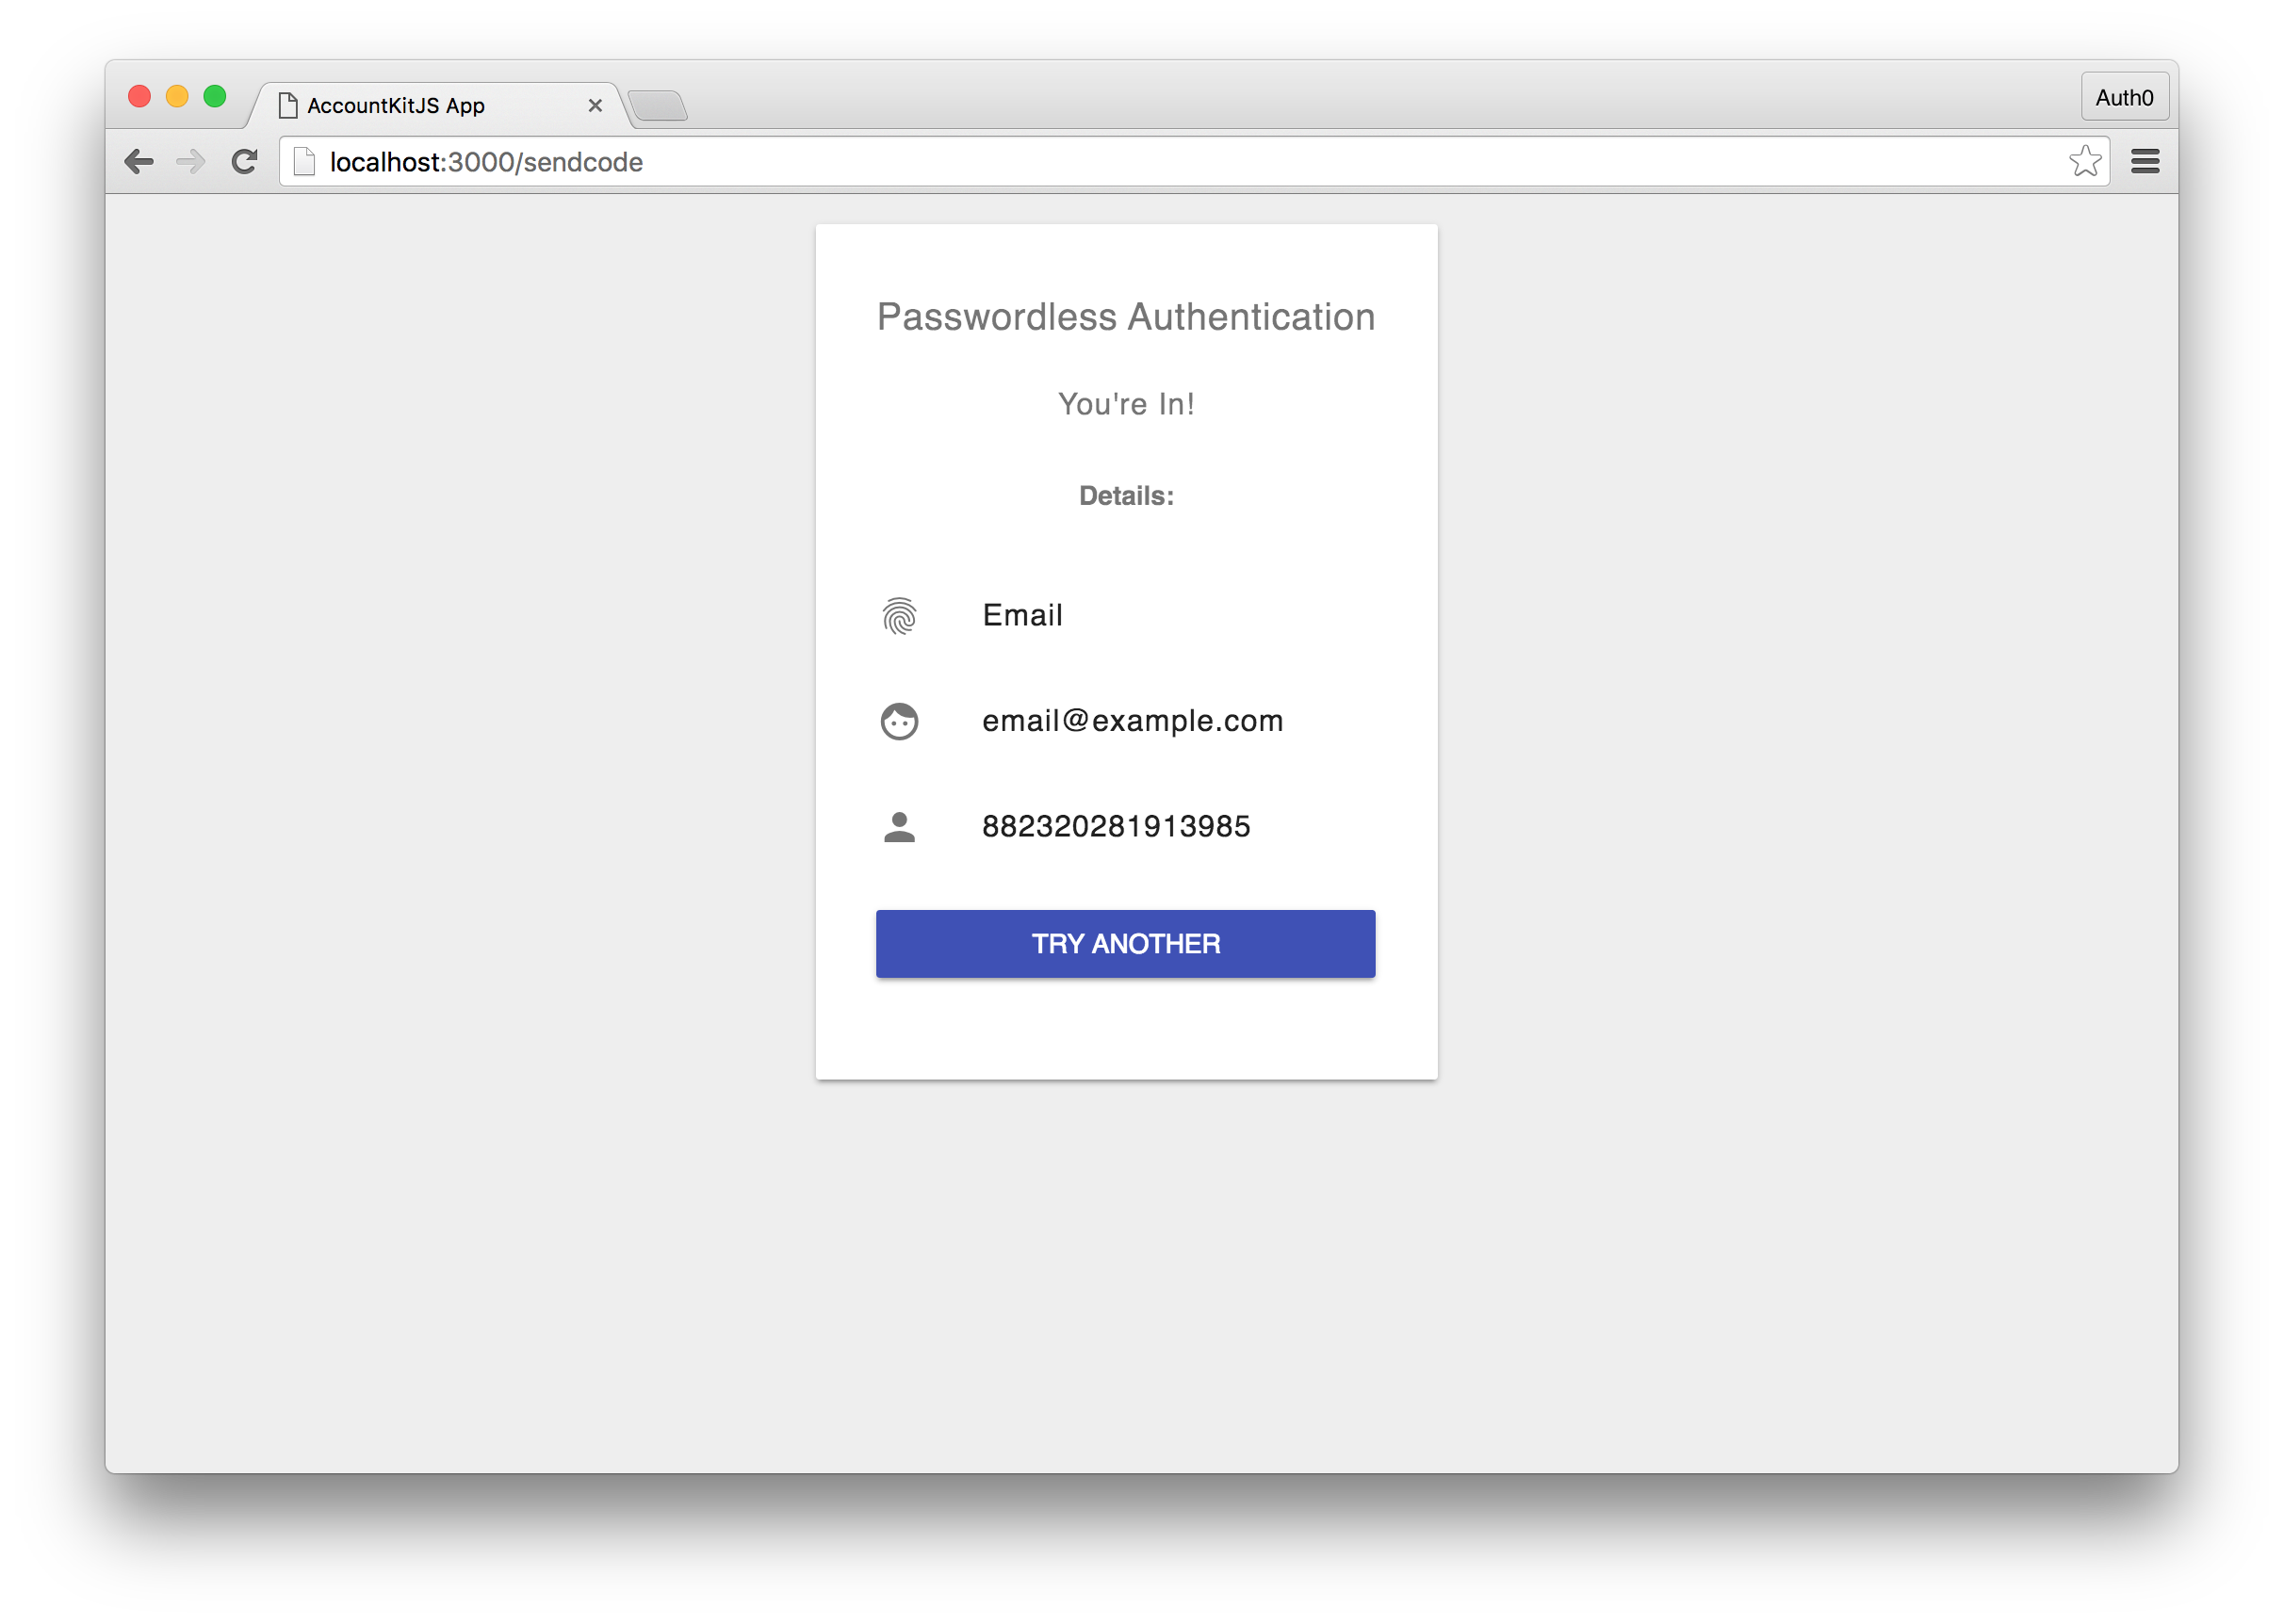 Sample App Authenticated Screen